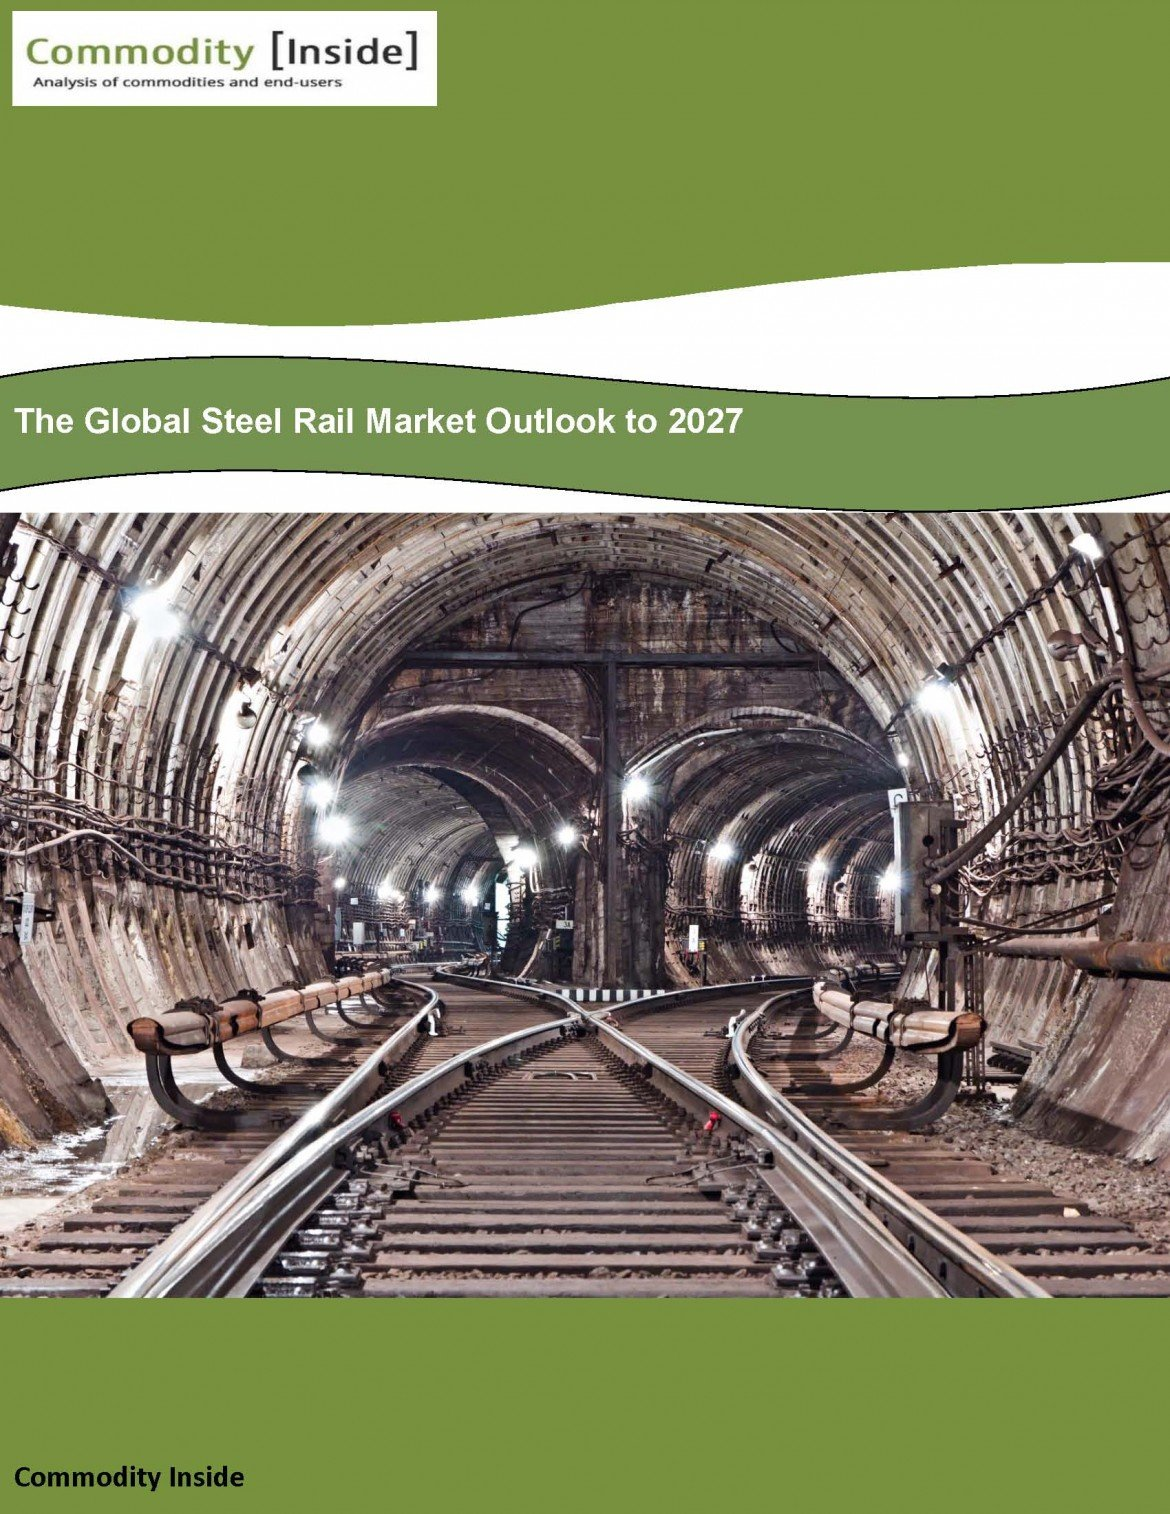 uae steel industry outlook 2018 Iron and steel market review - trends and forecast, resources worldwide, world and country production and consumption, manufacturers, export and import, prices.